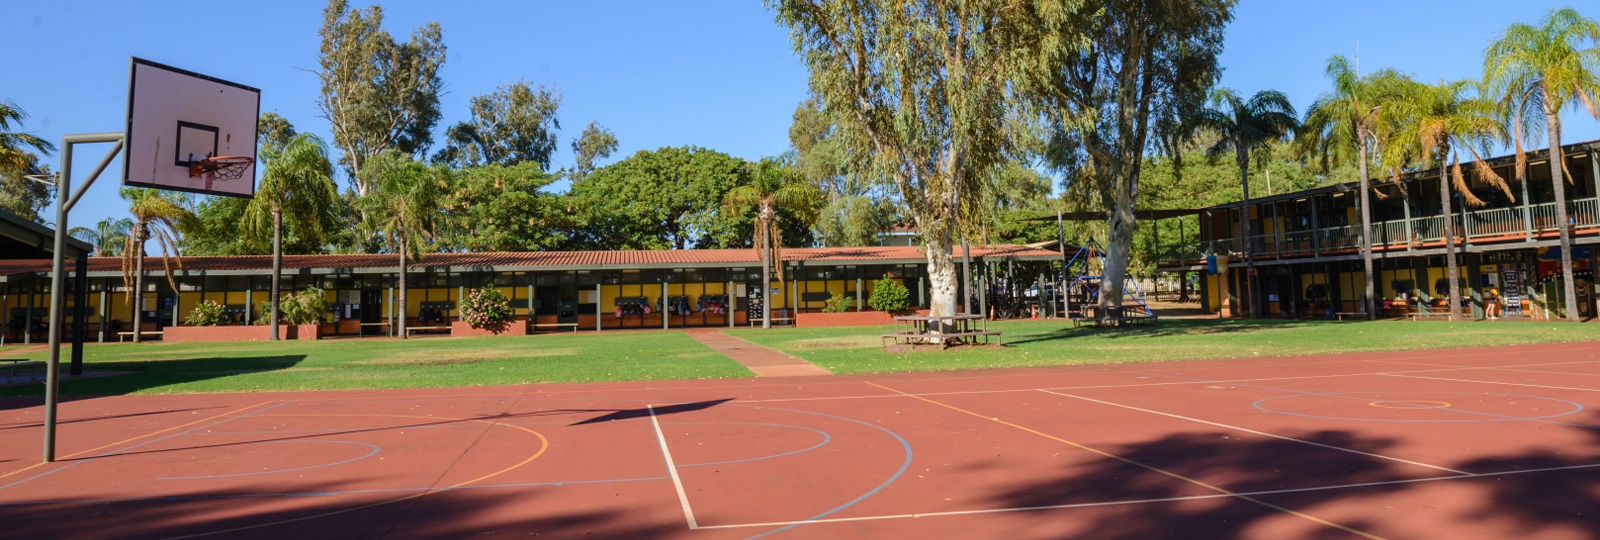 Newman PS play area